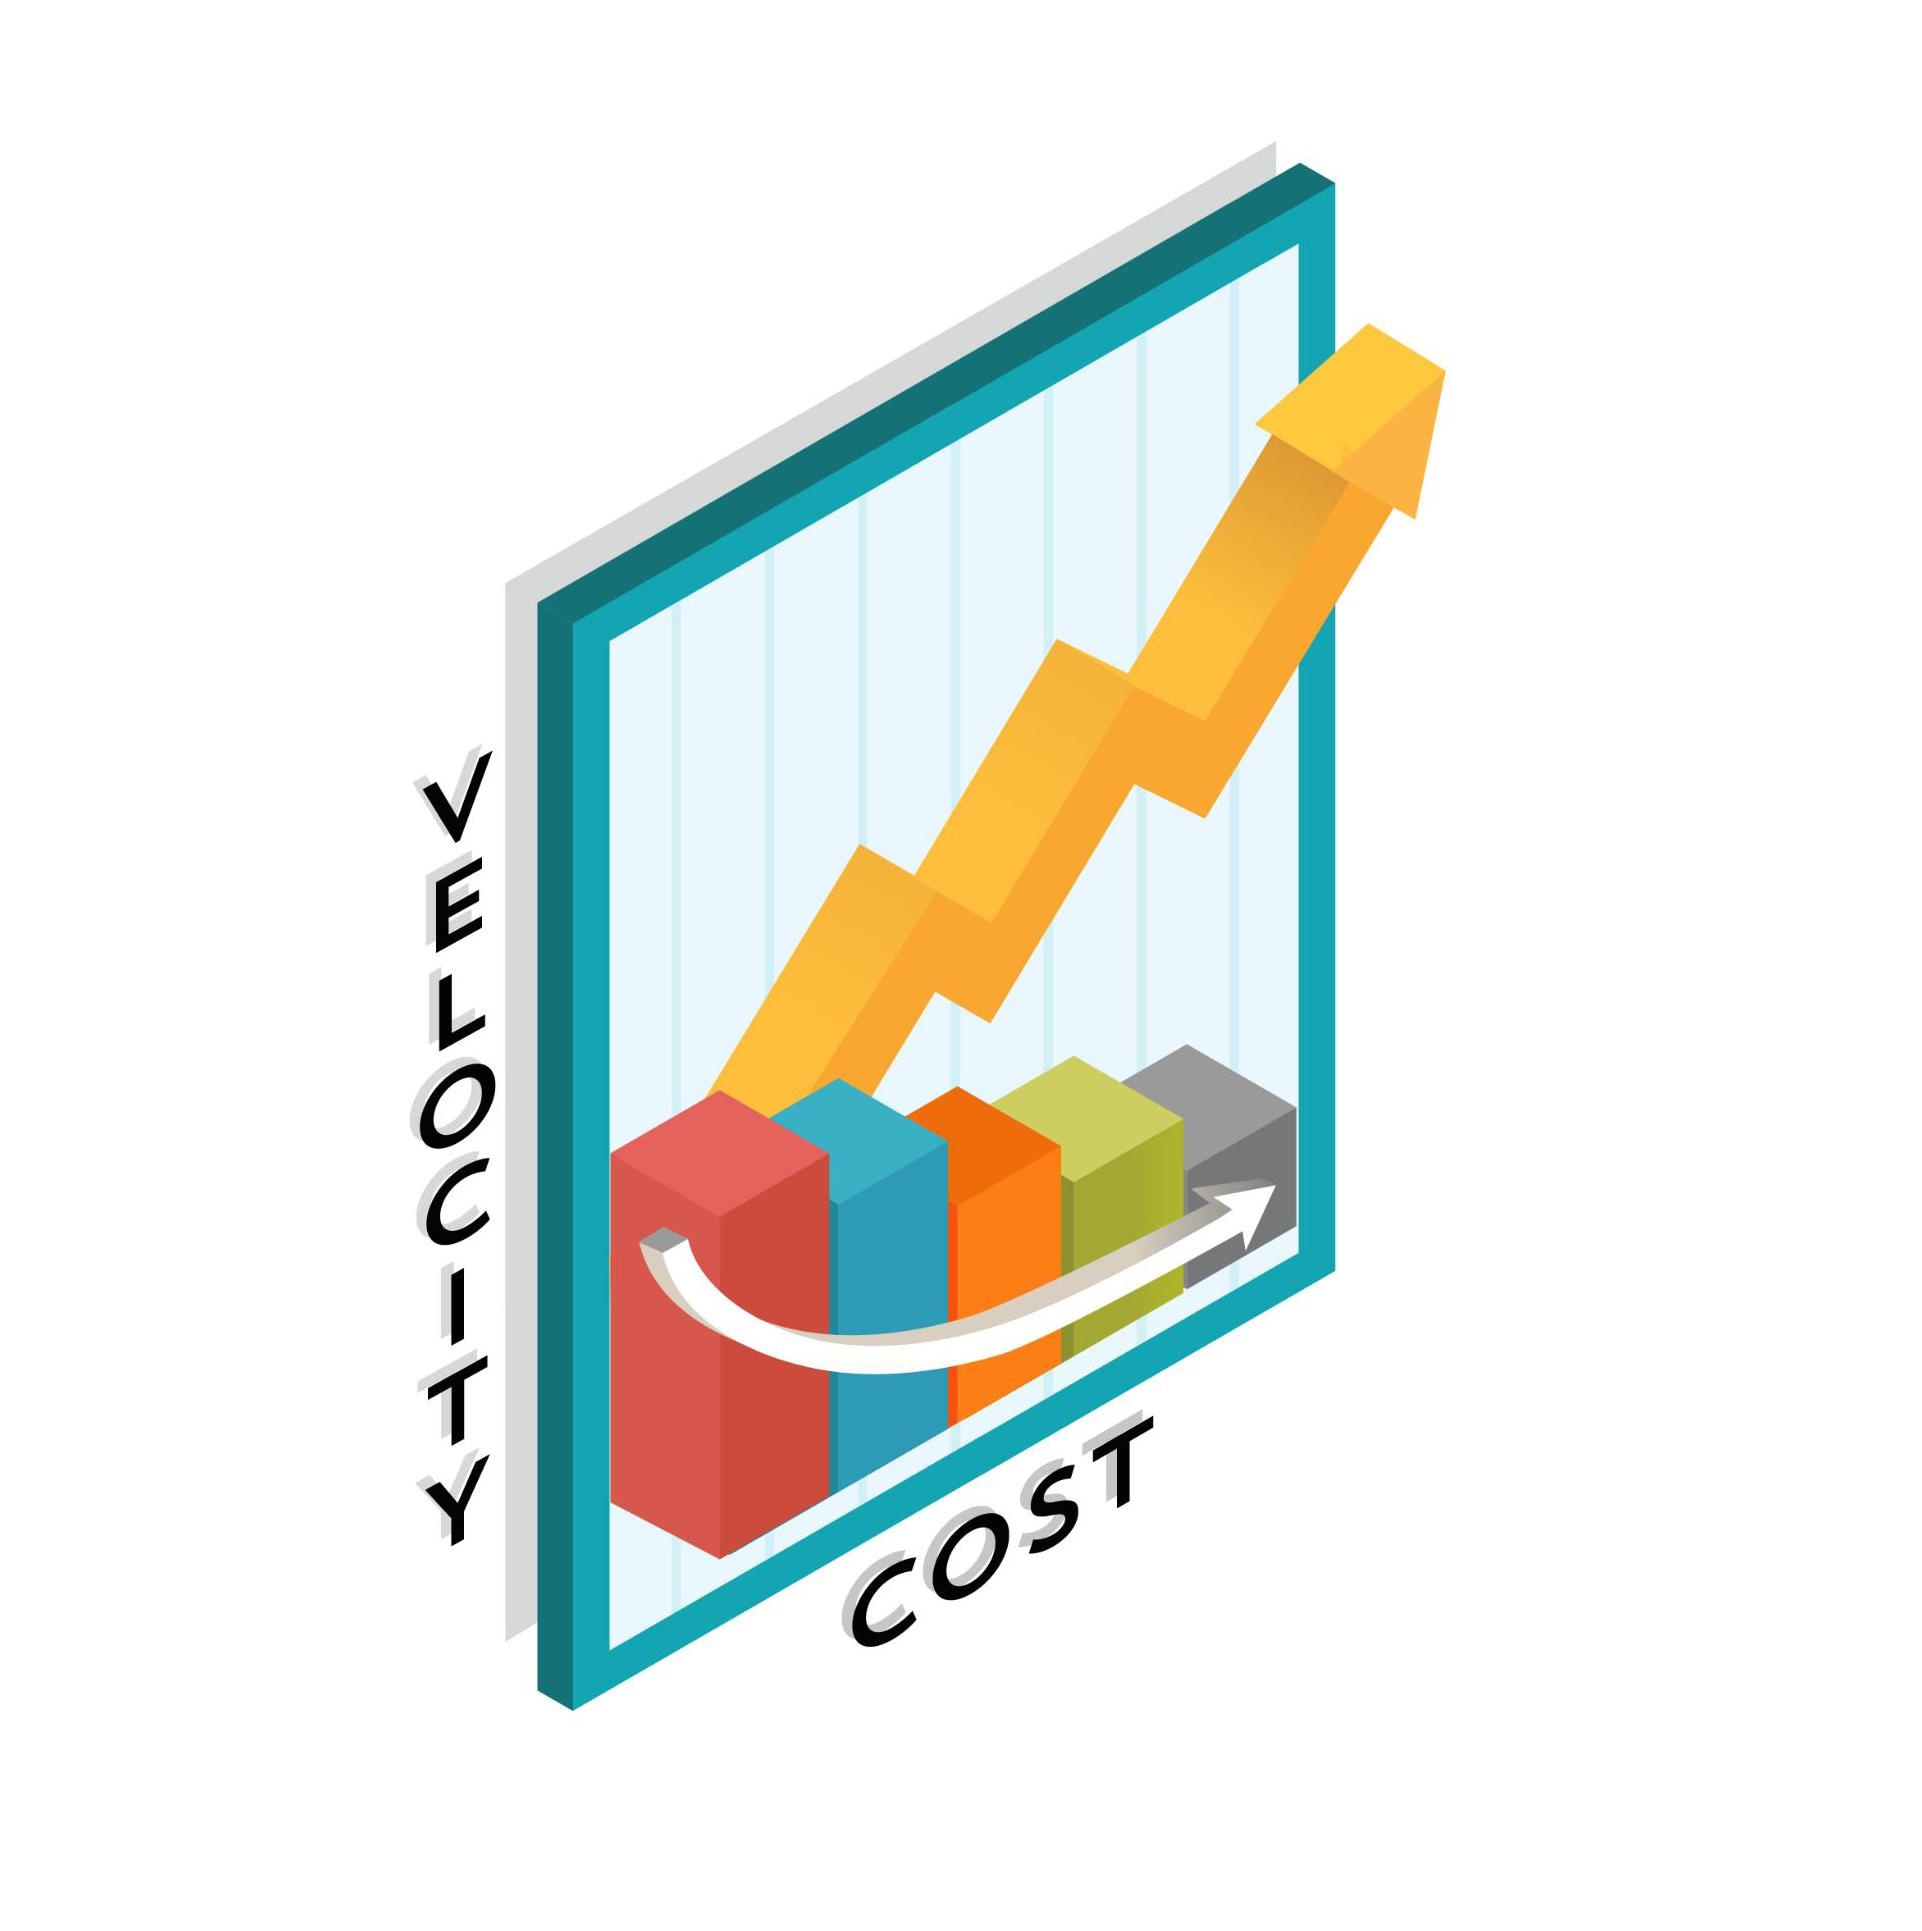 A chart showing cost decreasing as velocity increases